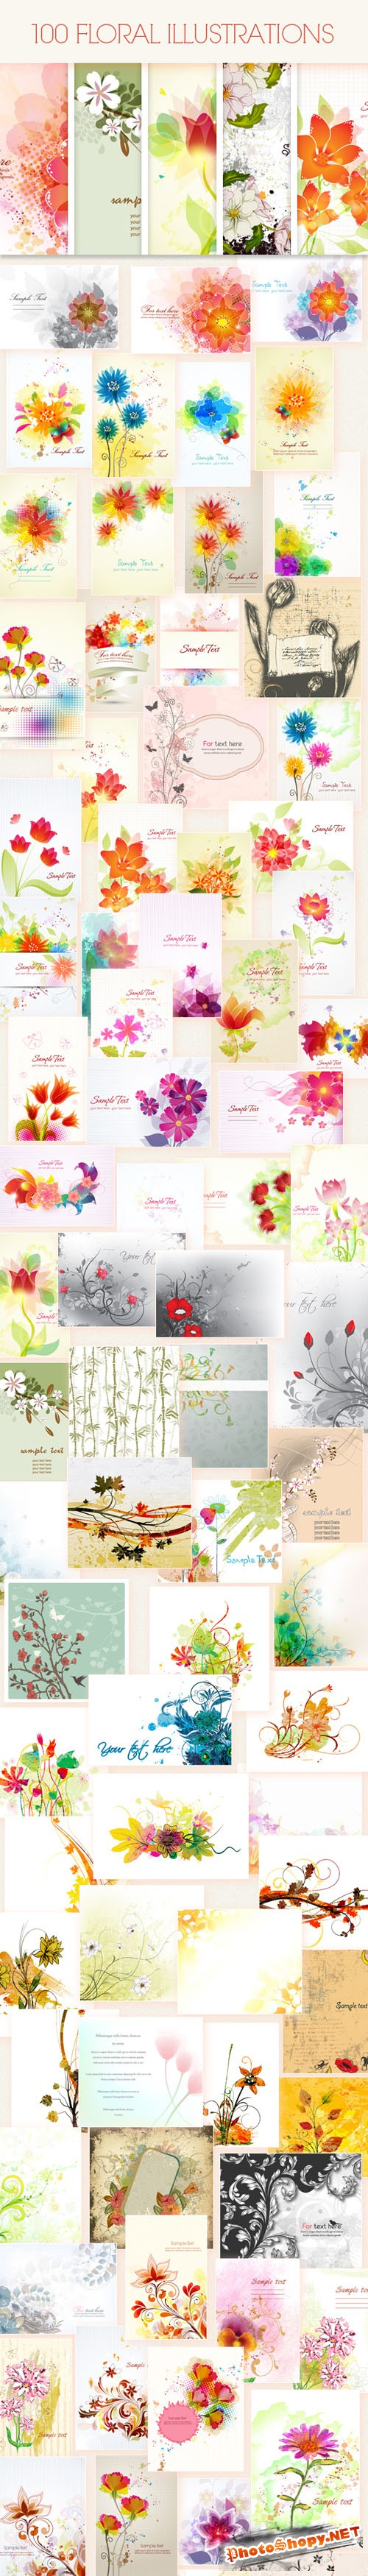 100 Floral Vector Illustrations